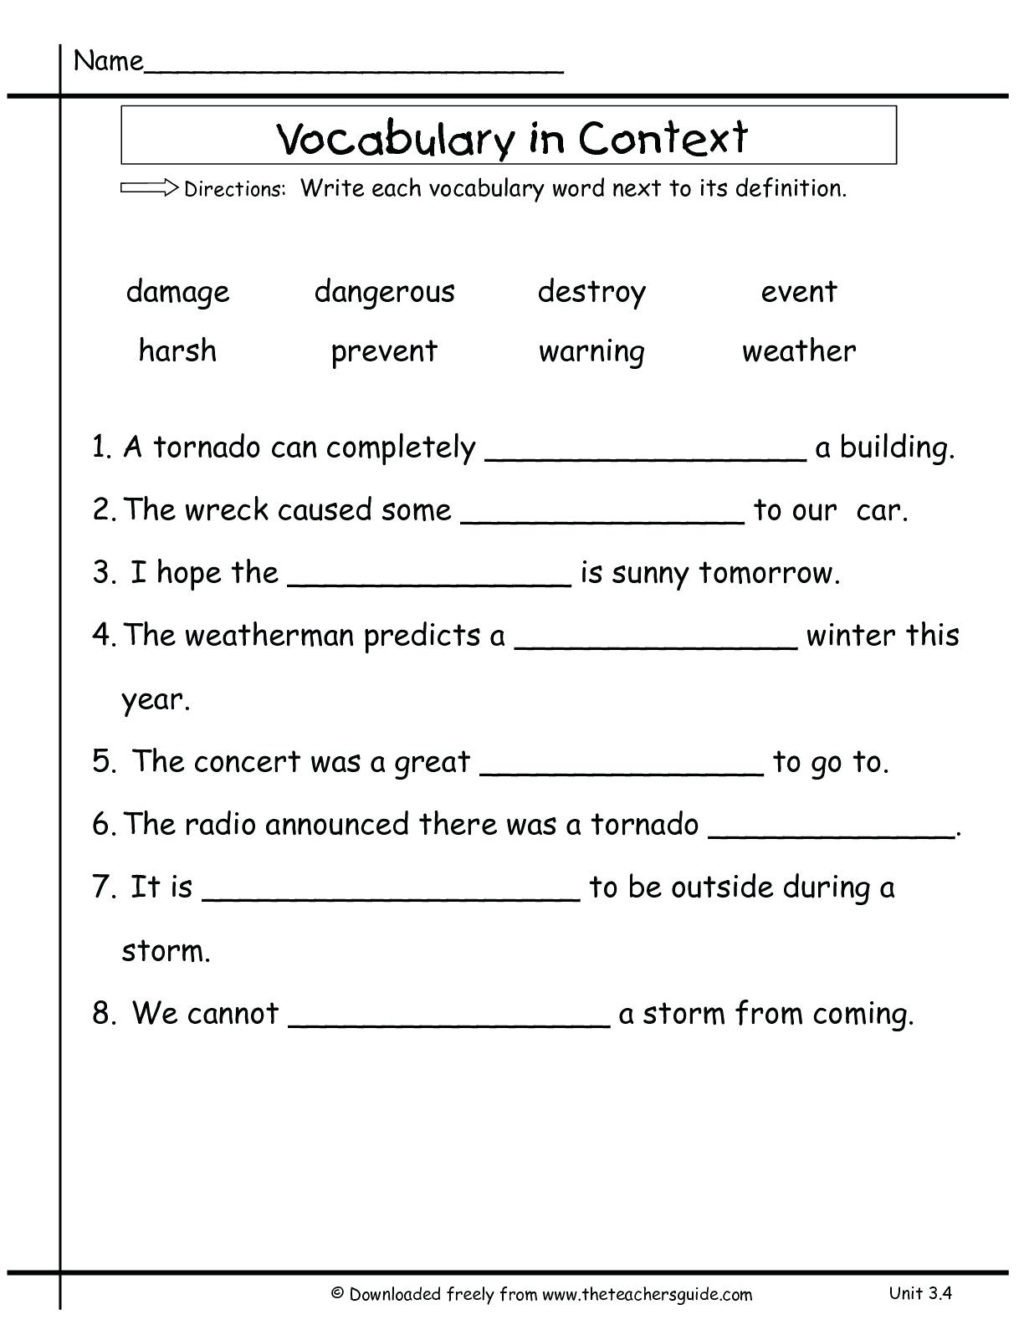 Social Studies Worksheet 3rd Grade Worksheet 3rd Grade Vocabulary Worksheets for